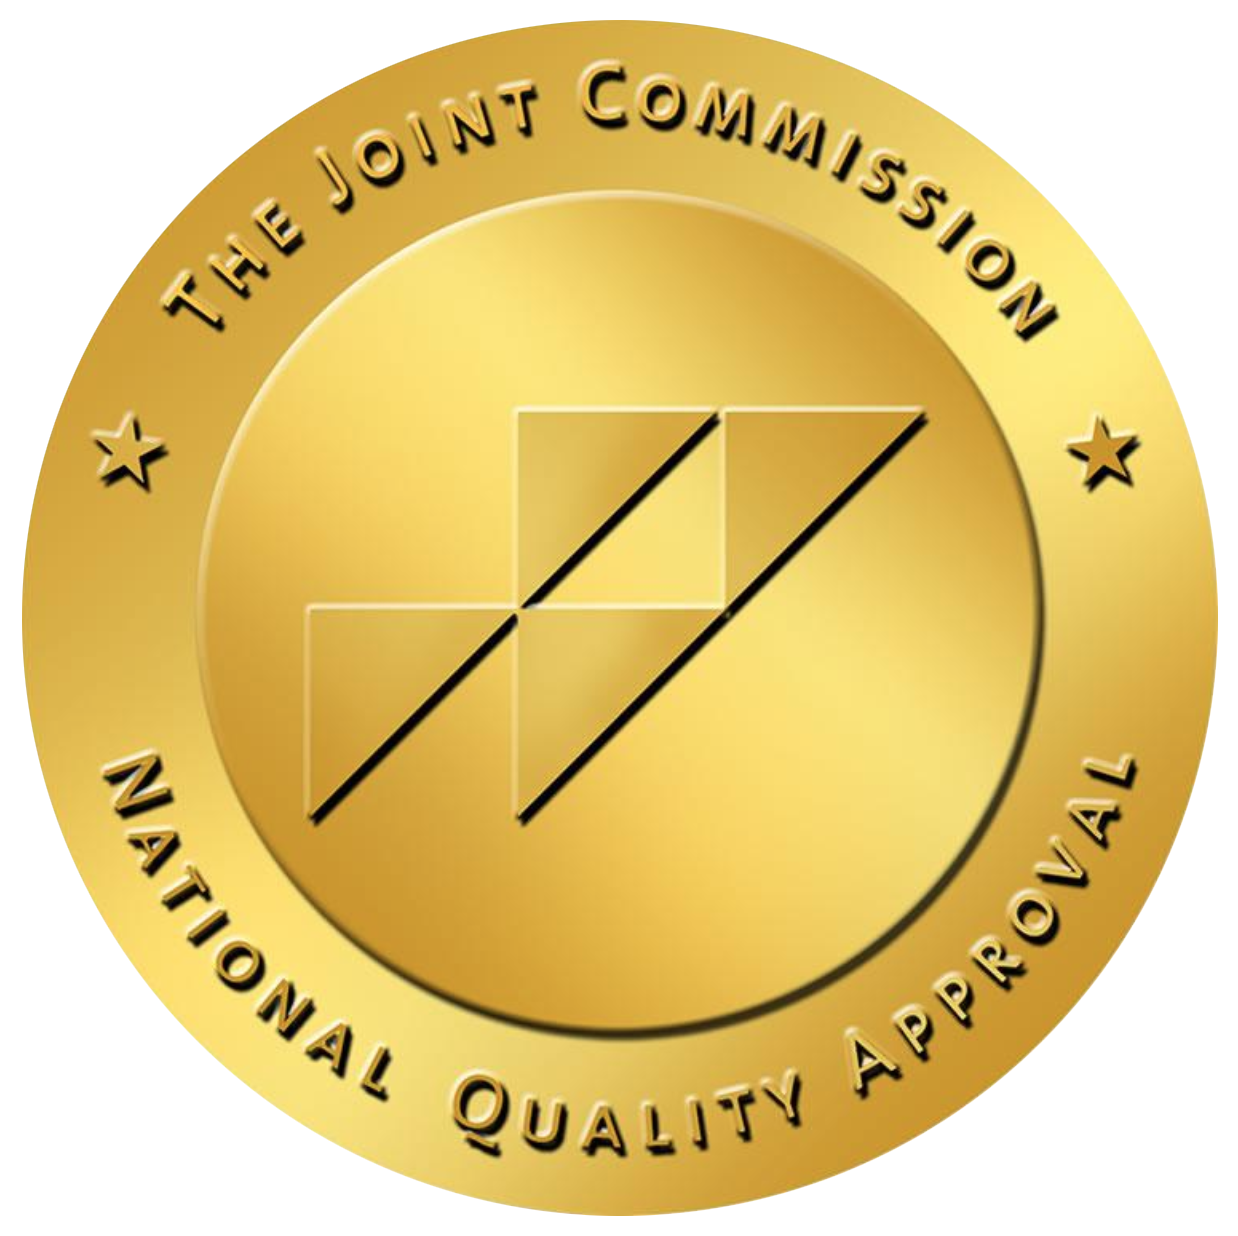 jointcommissionseal.png